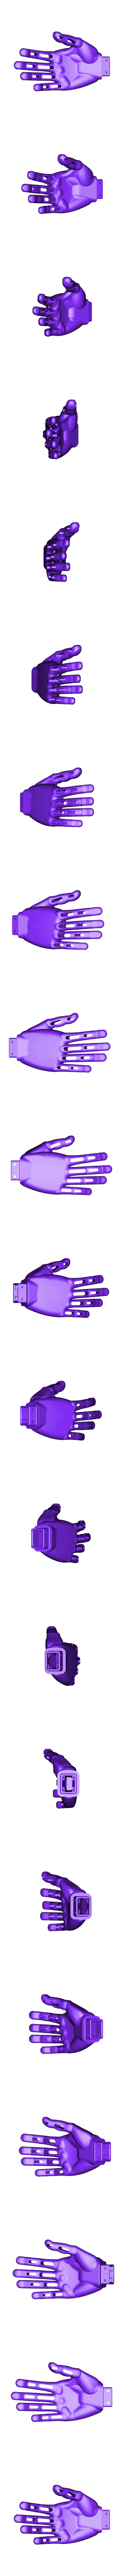 hand_right.STL Download free STL file Poppy Torso • 3D printable model, PoppyProject